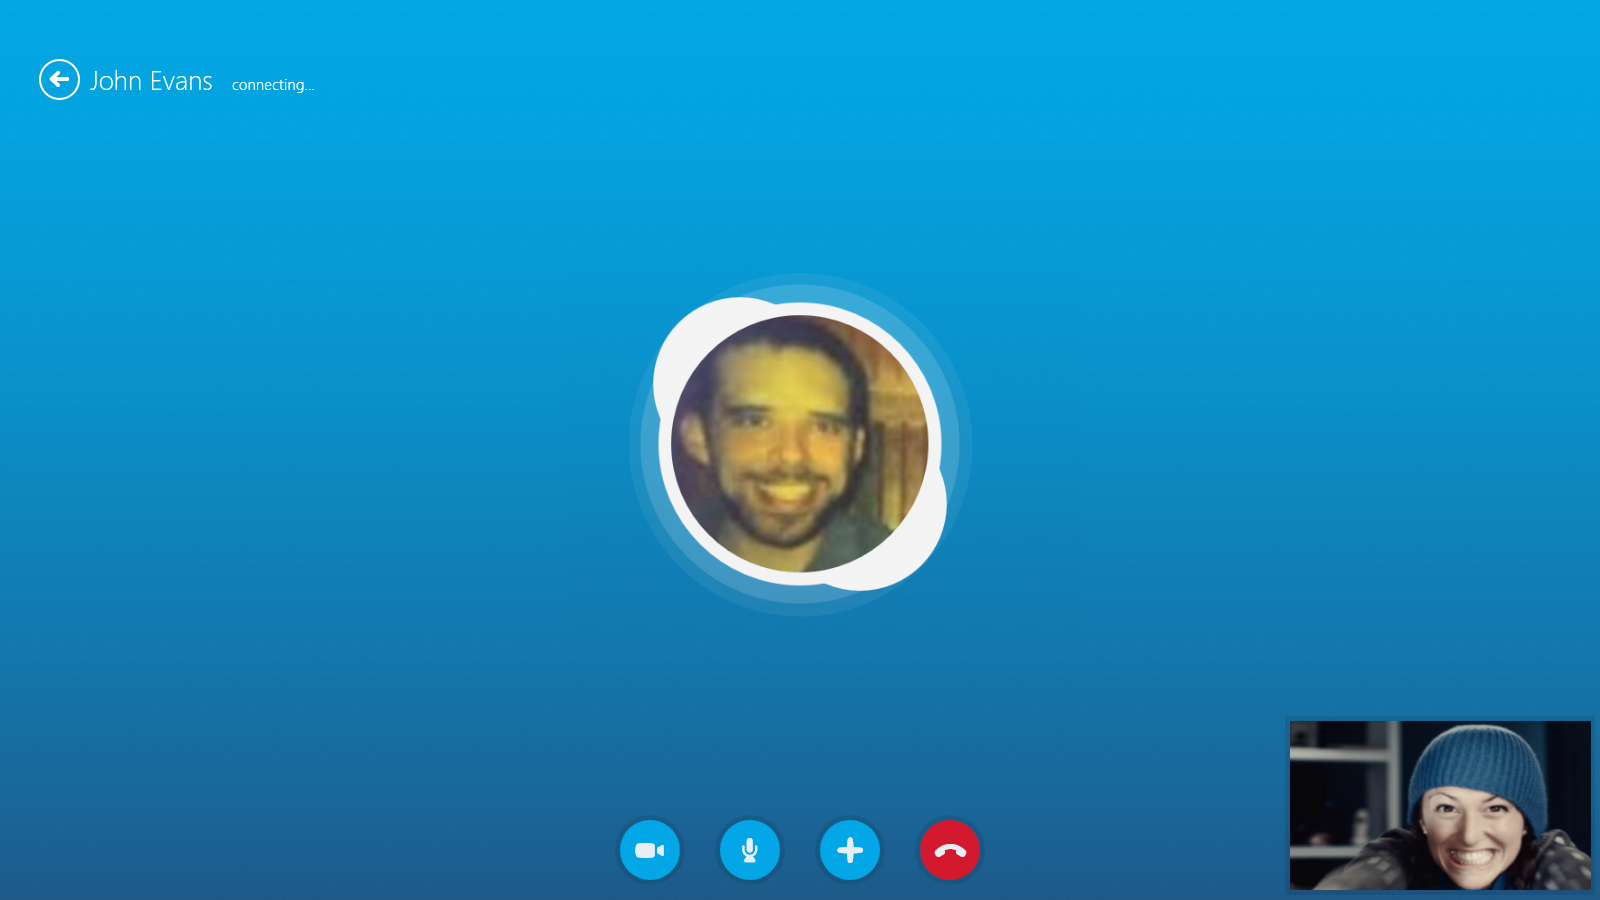 The Skype video call screen.